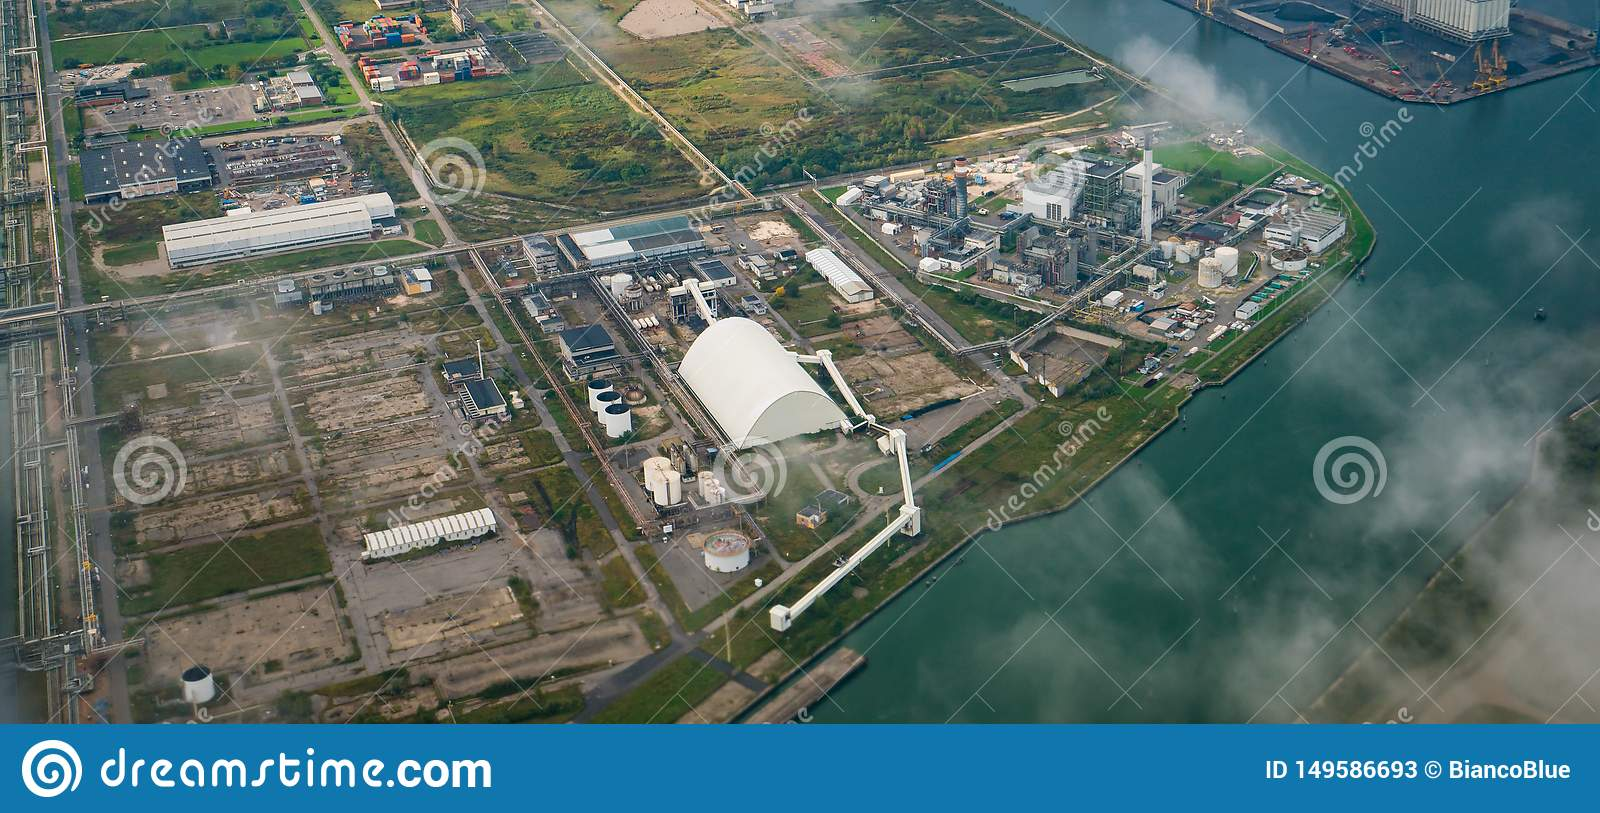 Aerial view of factories in industrial district